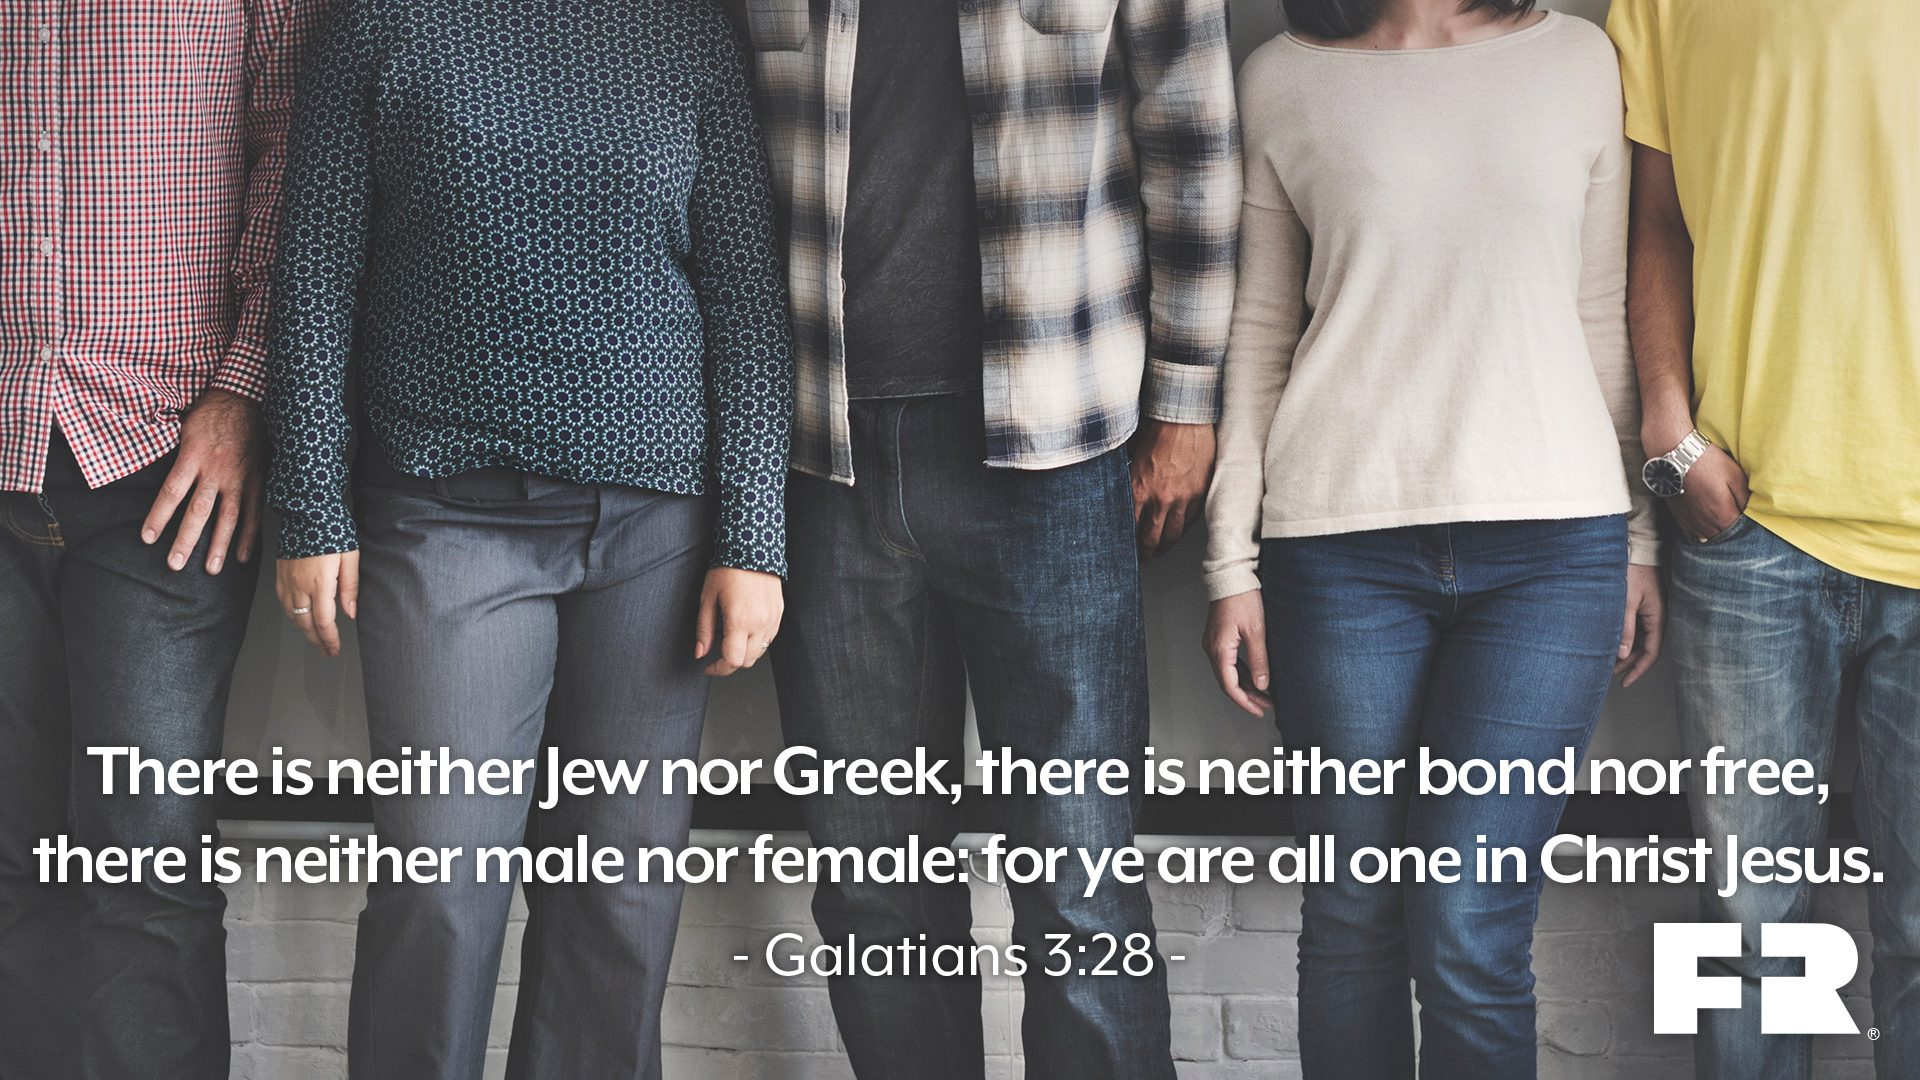 """There is neither Jew nor Greek, there is neither bond nor free, there is neither male nor female: for ye are all one in Christ Jesus."""